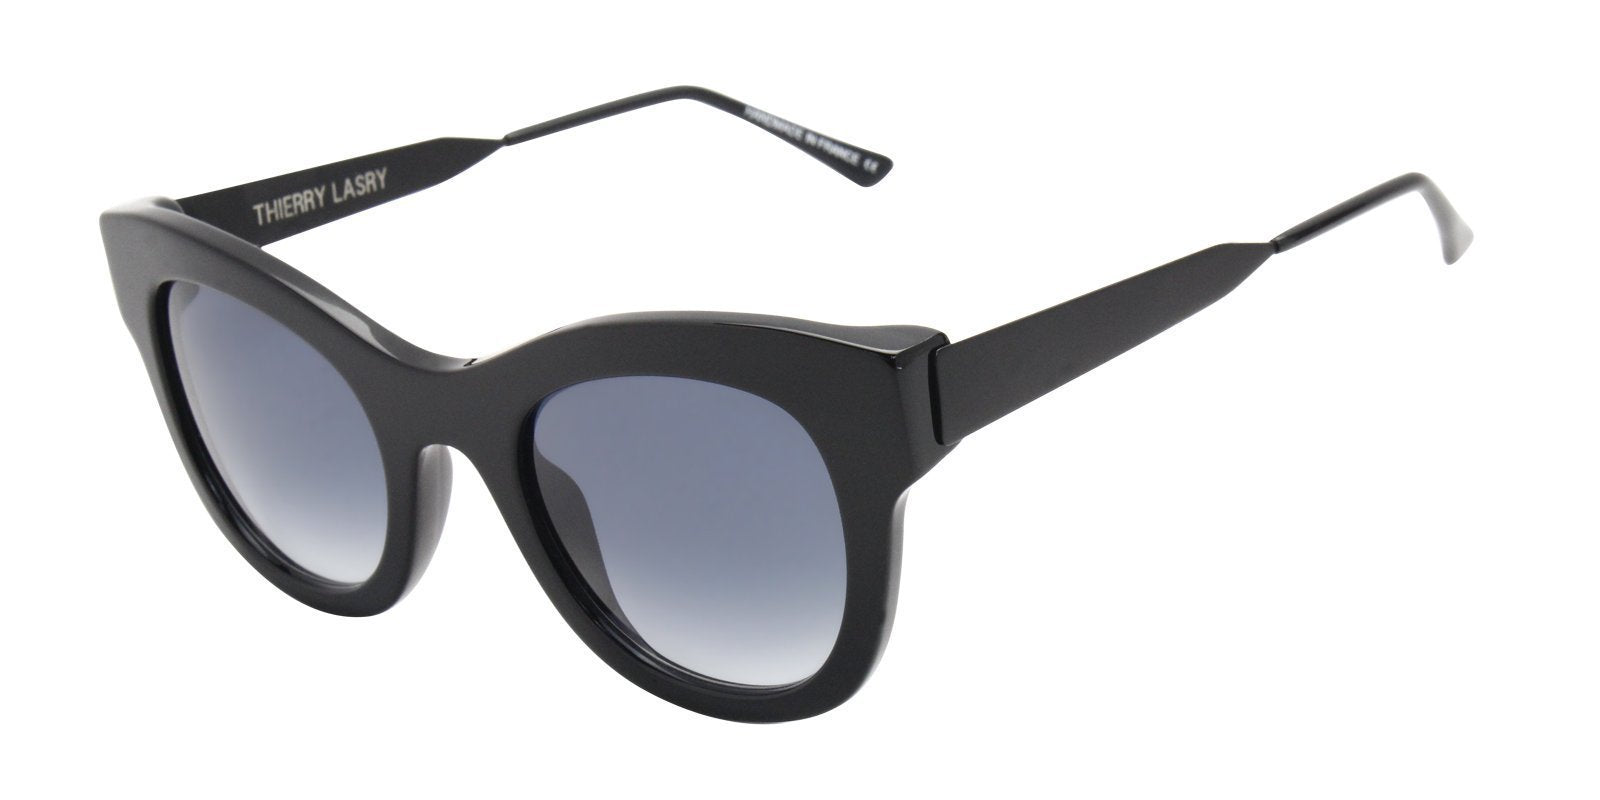 Thierry Lasry - Leggy Black Oval Women Sunglasses - 52mm-Sunglasses-Designer Eyes